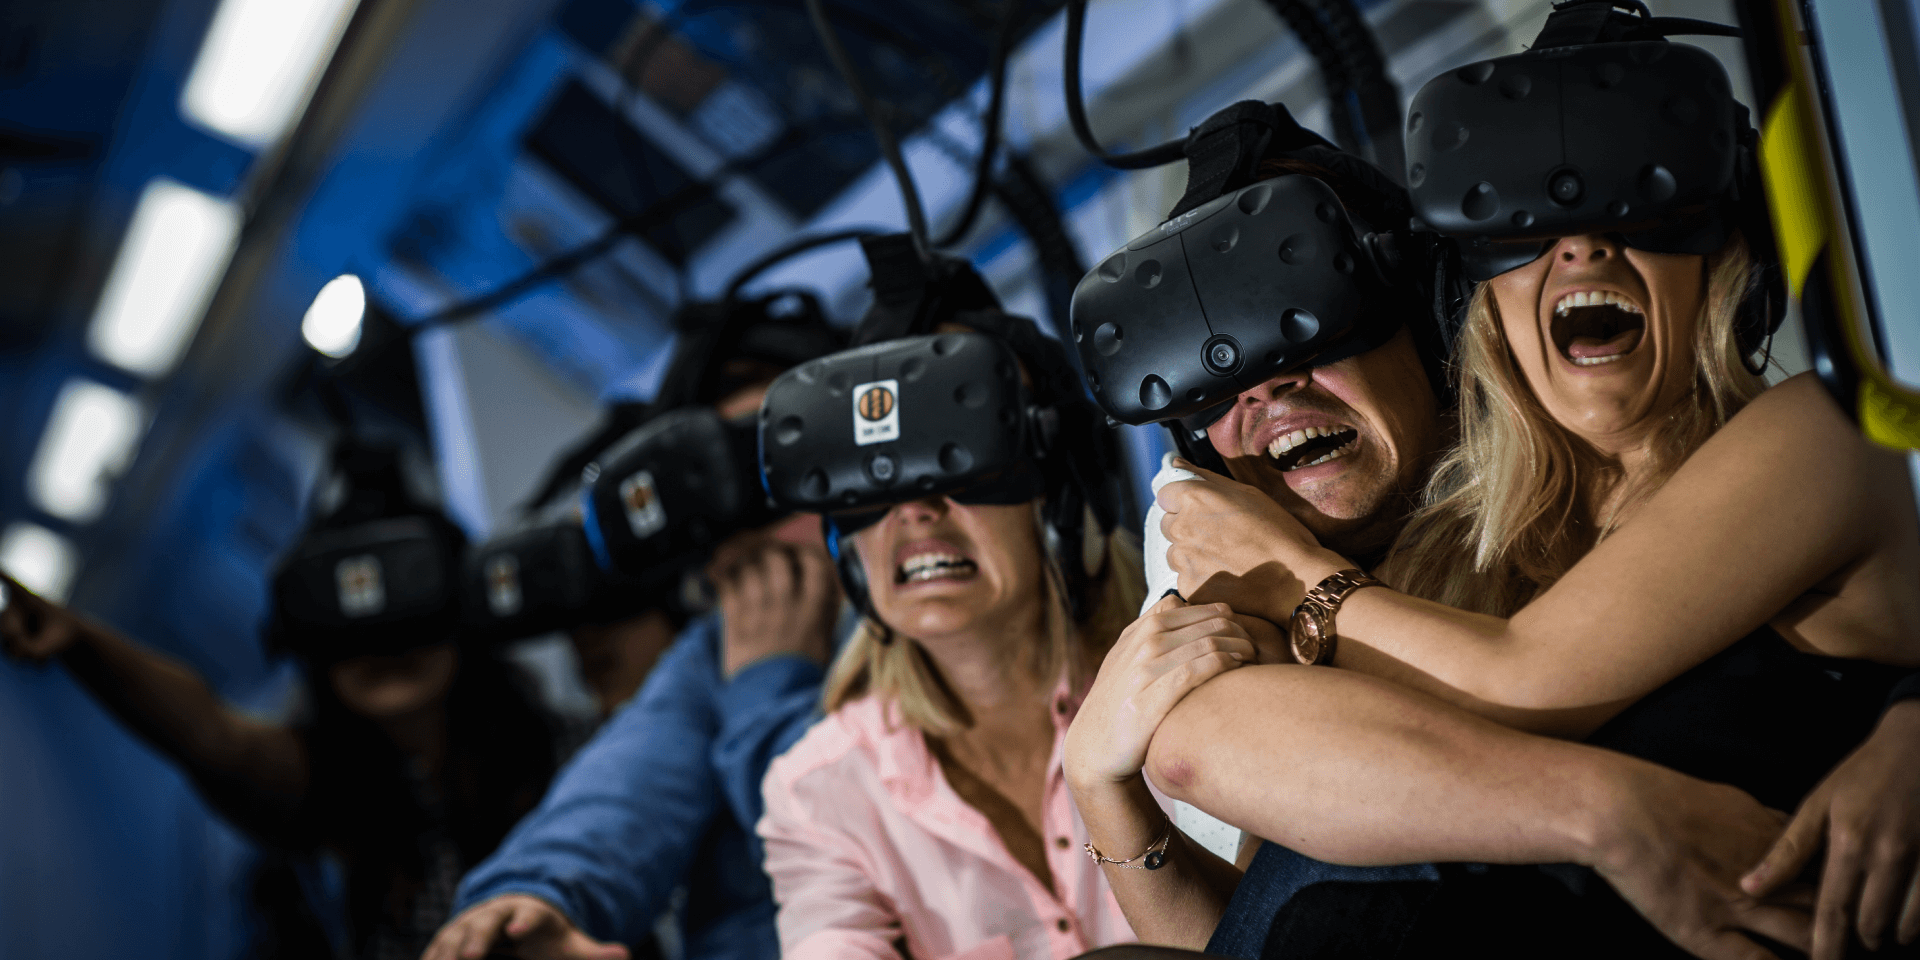 Derren Brown Ghost Train , Screaming Guests Wearing VR Headsets